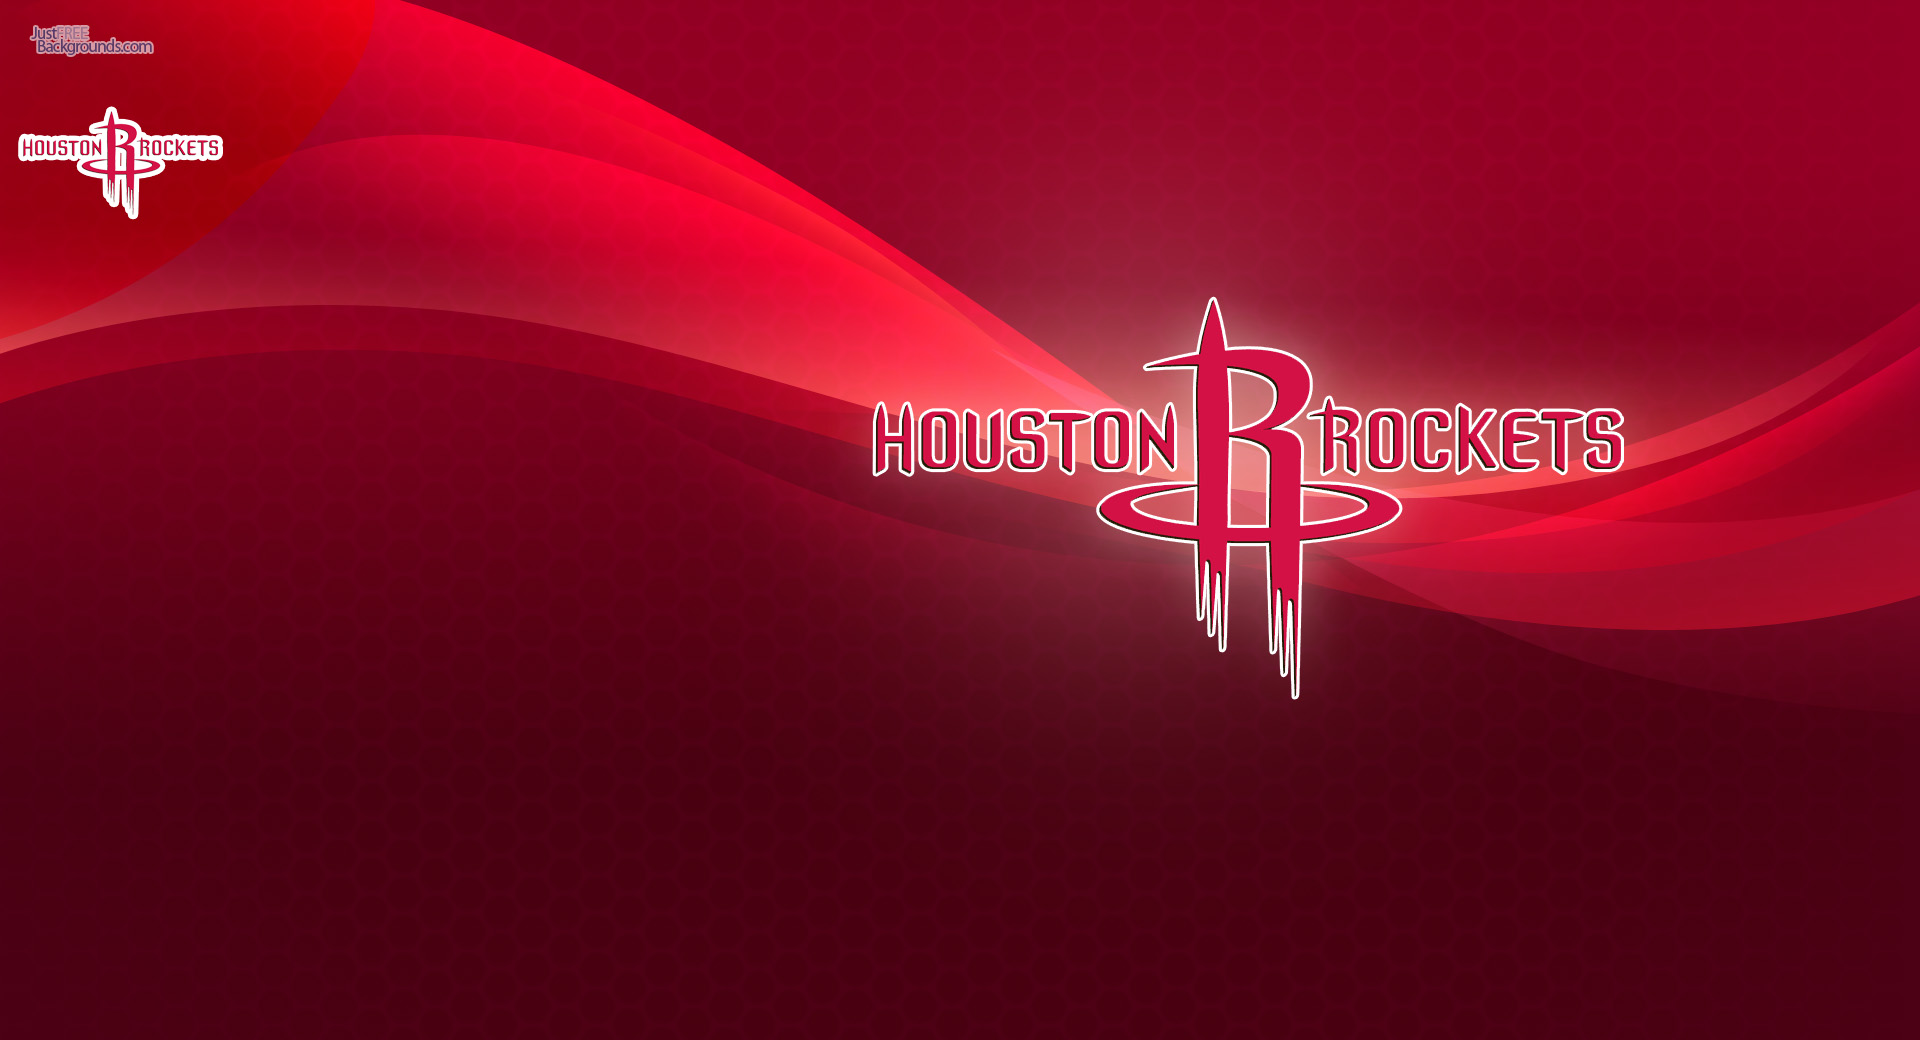 Houston Rockets Wallpaper and Background Image | 1920x1040 | ID:444748 - Wallpaper Abyss